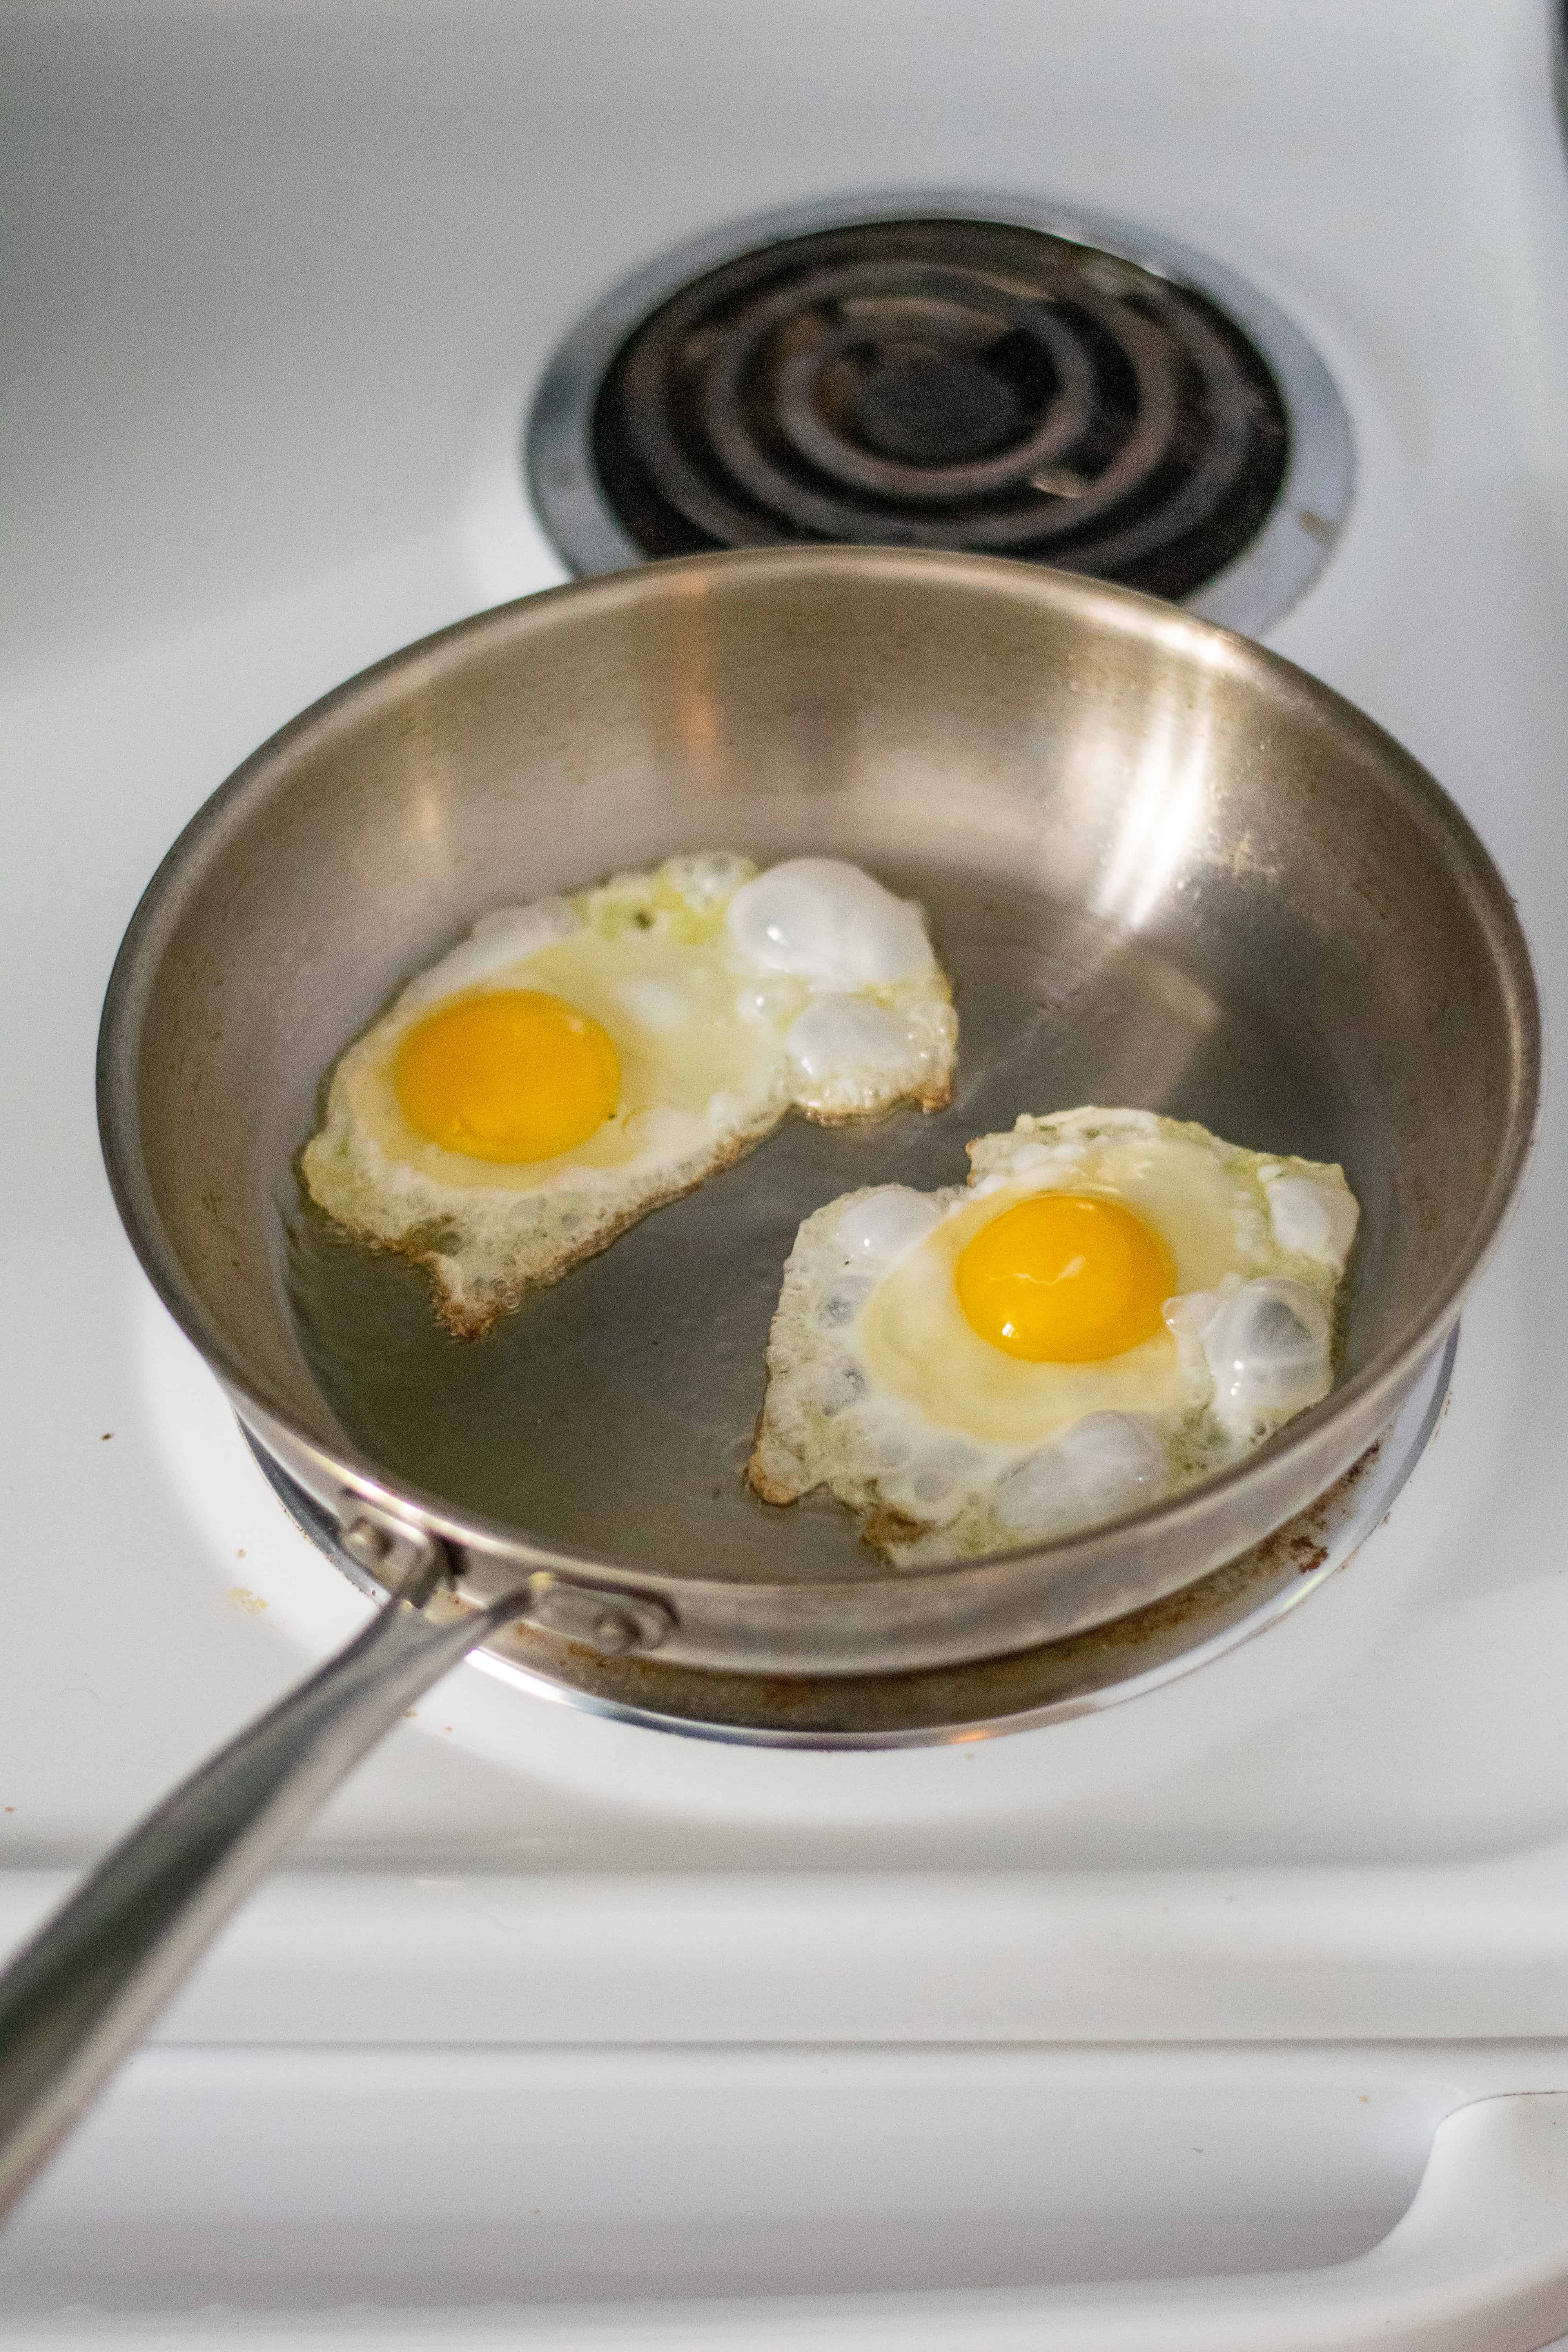 eggs in a frying pan on the stove top cooking